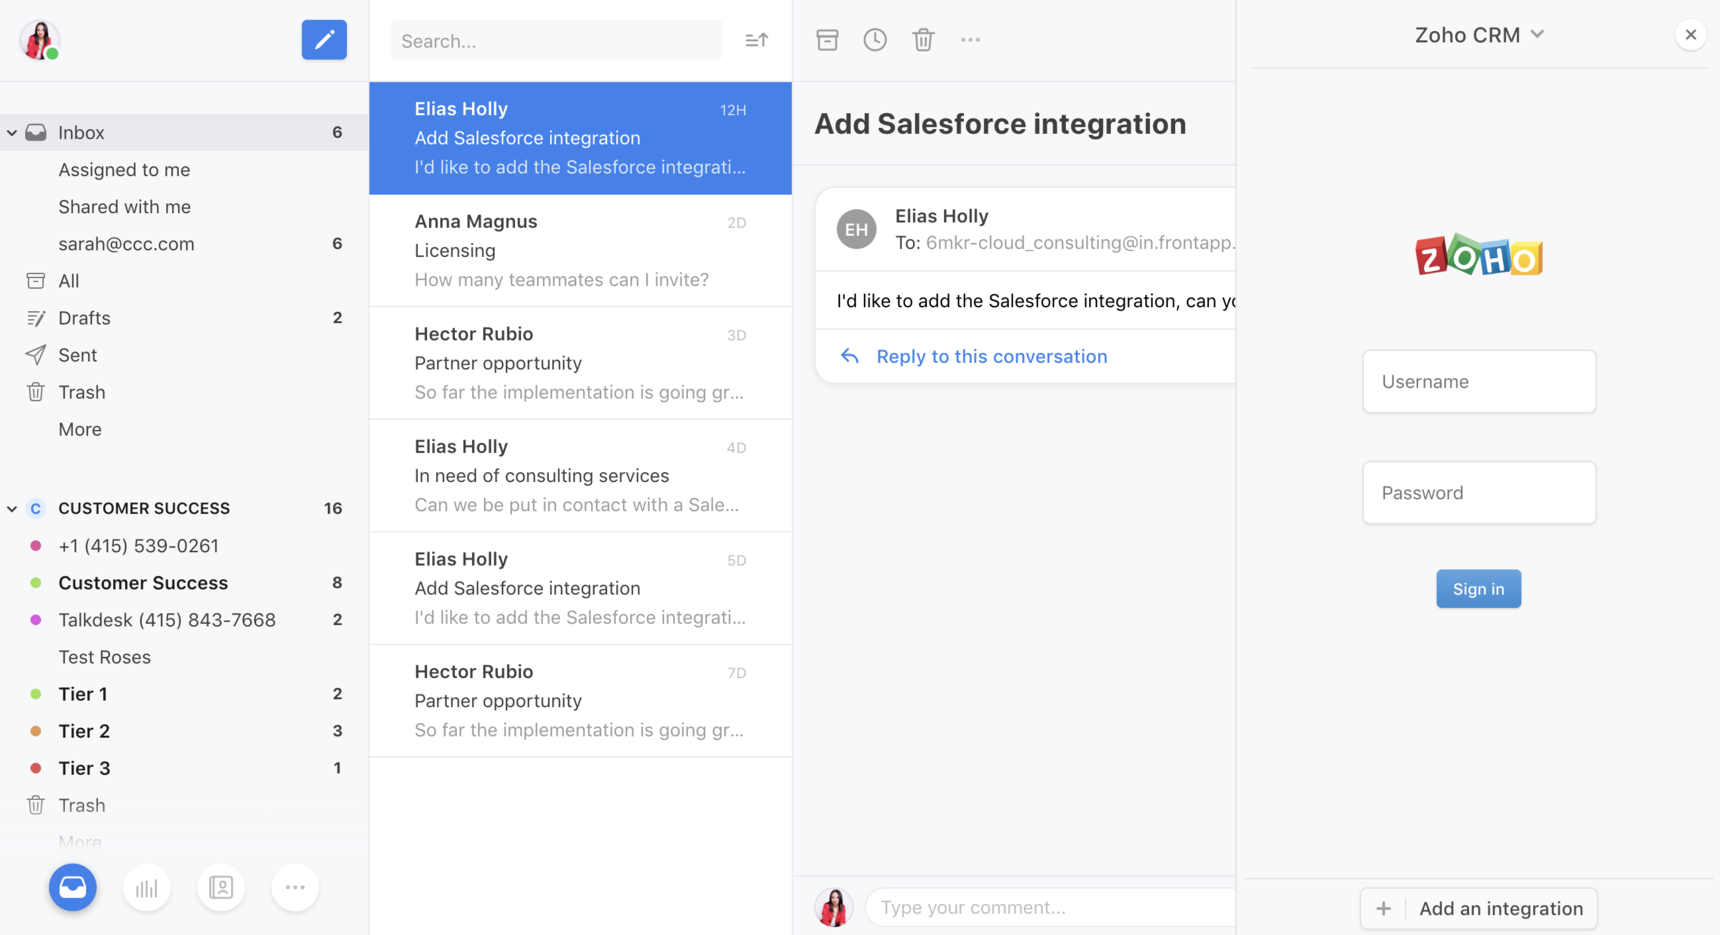 How to enable and use the Zoho CRM integration - API